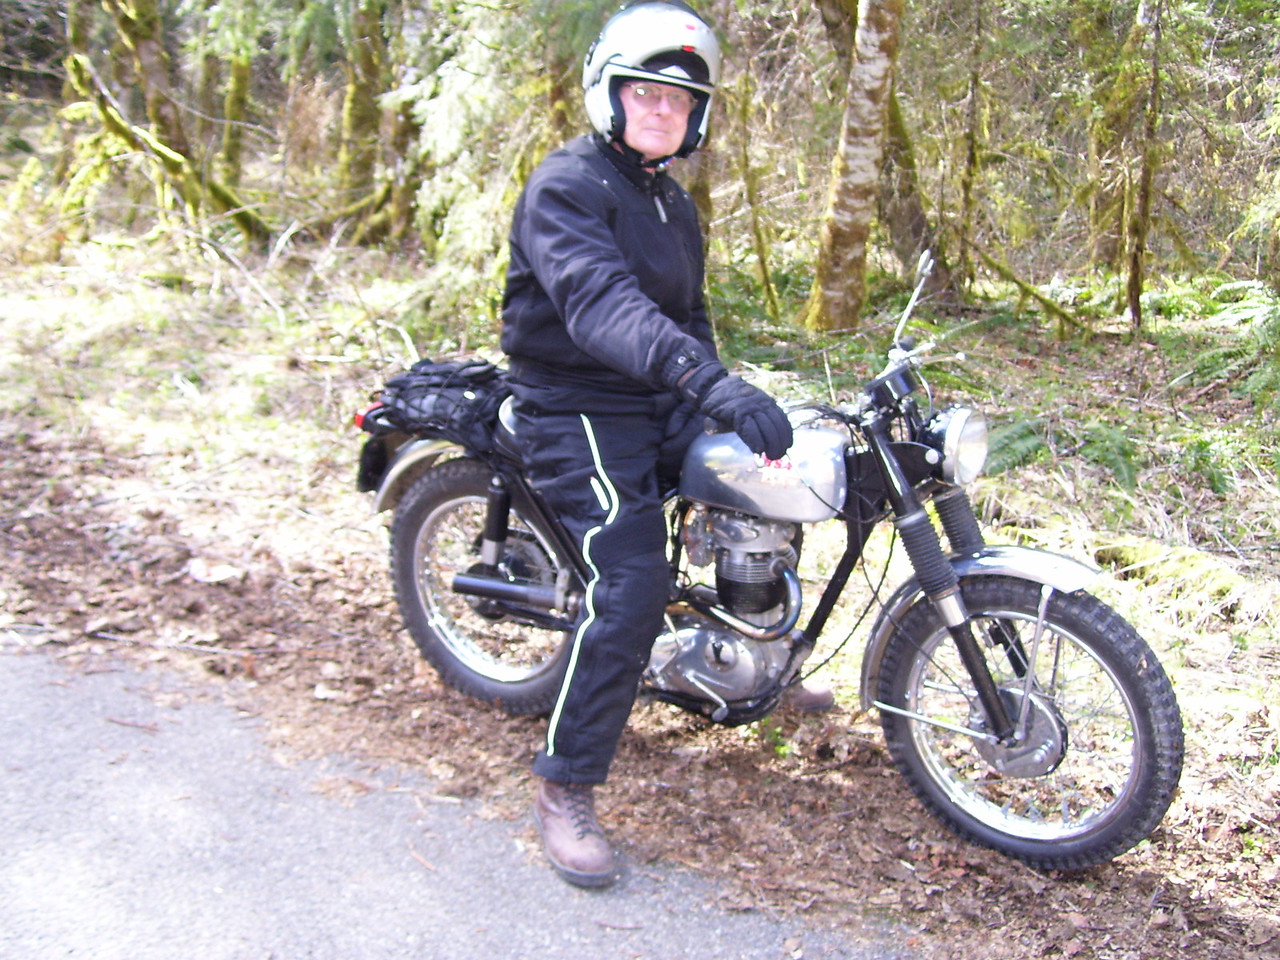 Norman is 75 years old and rides a 1964 BSA 350.